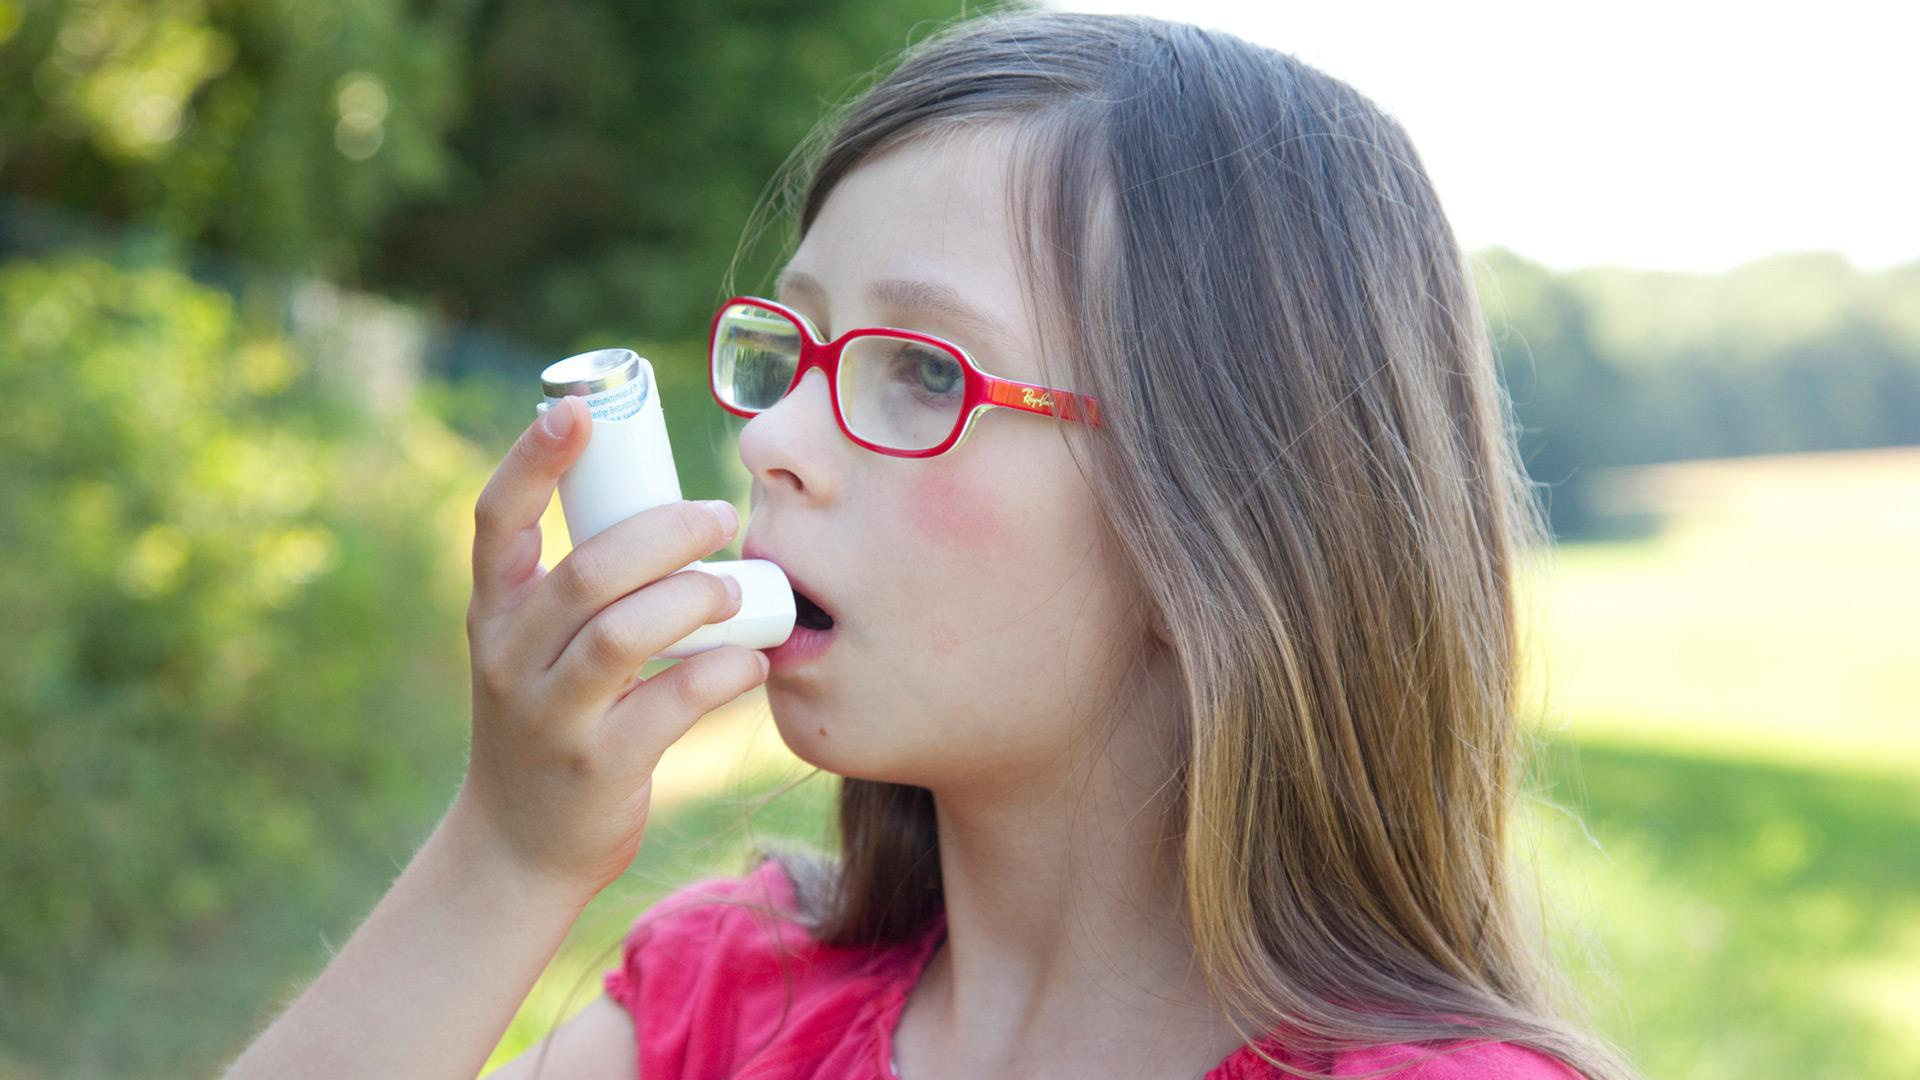 Treating your child's asthma at school